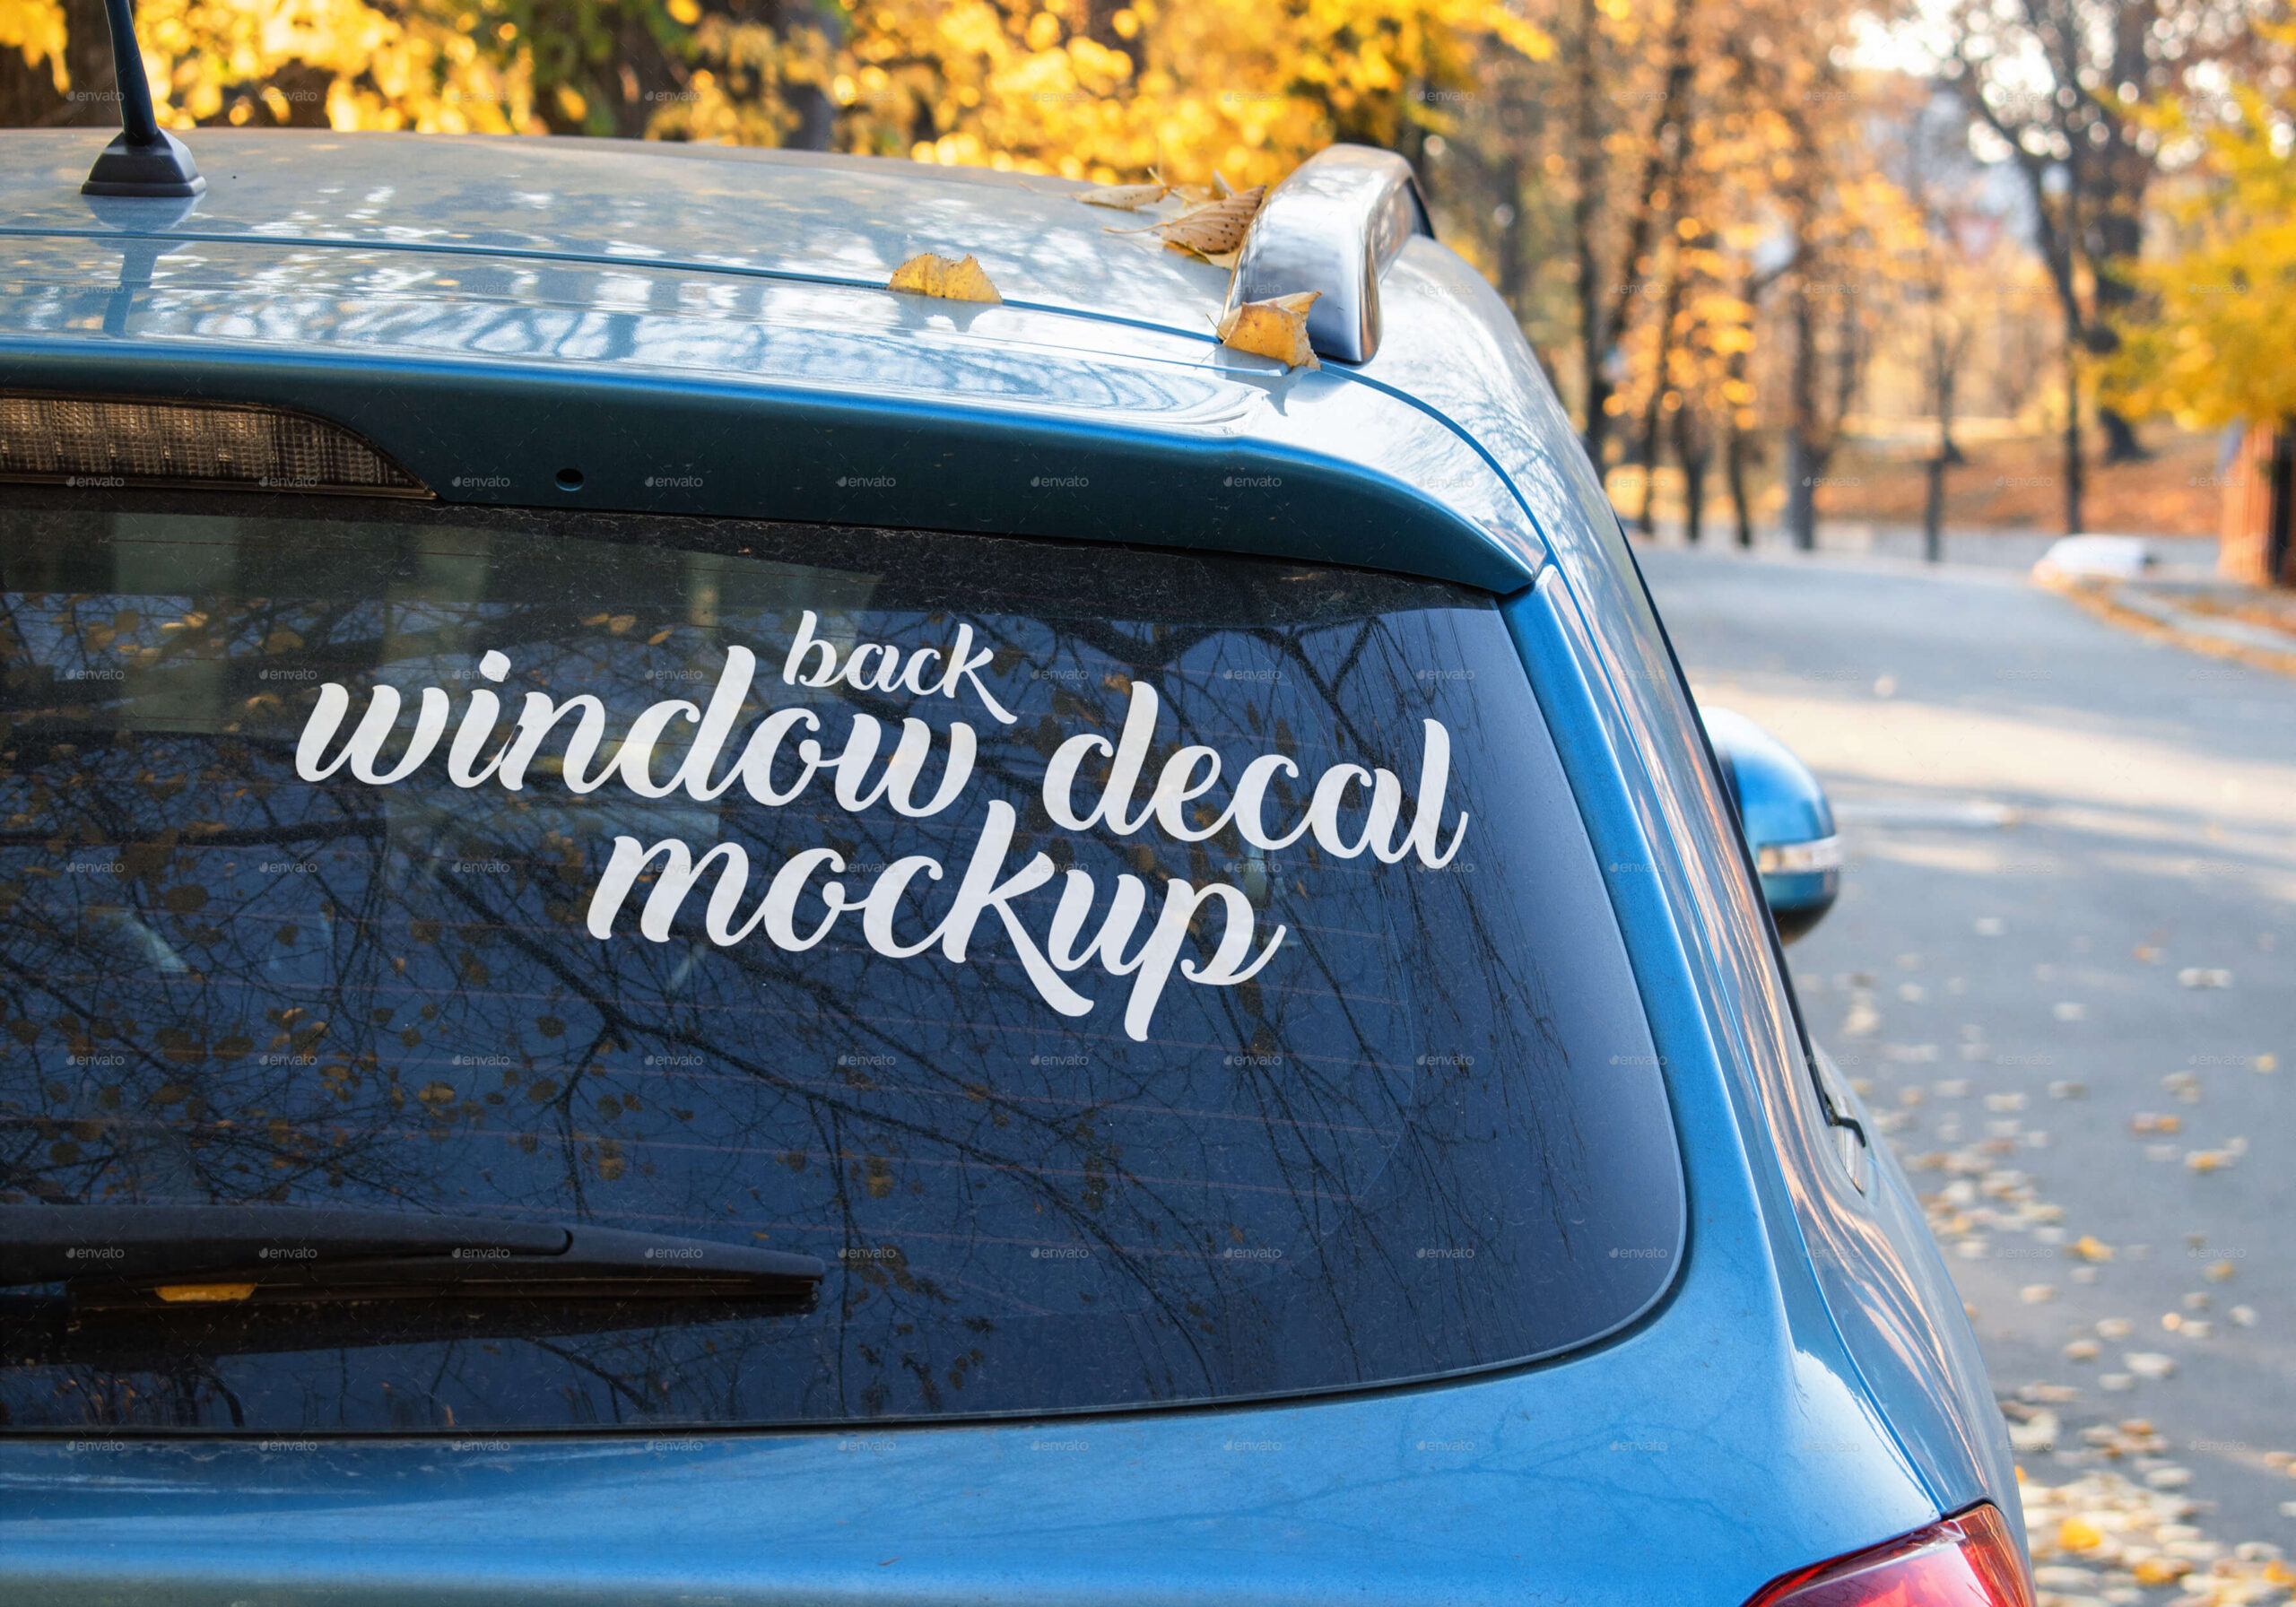 Car Window Decal Mockup Set (1)